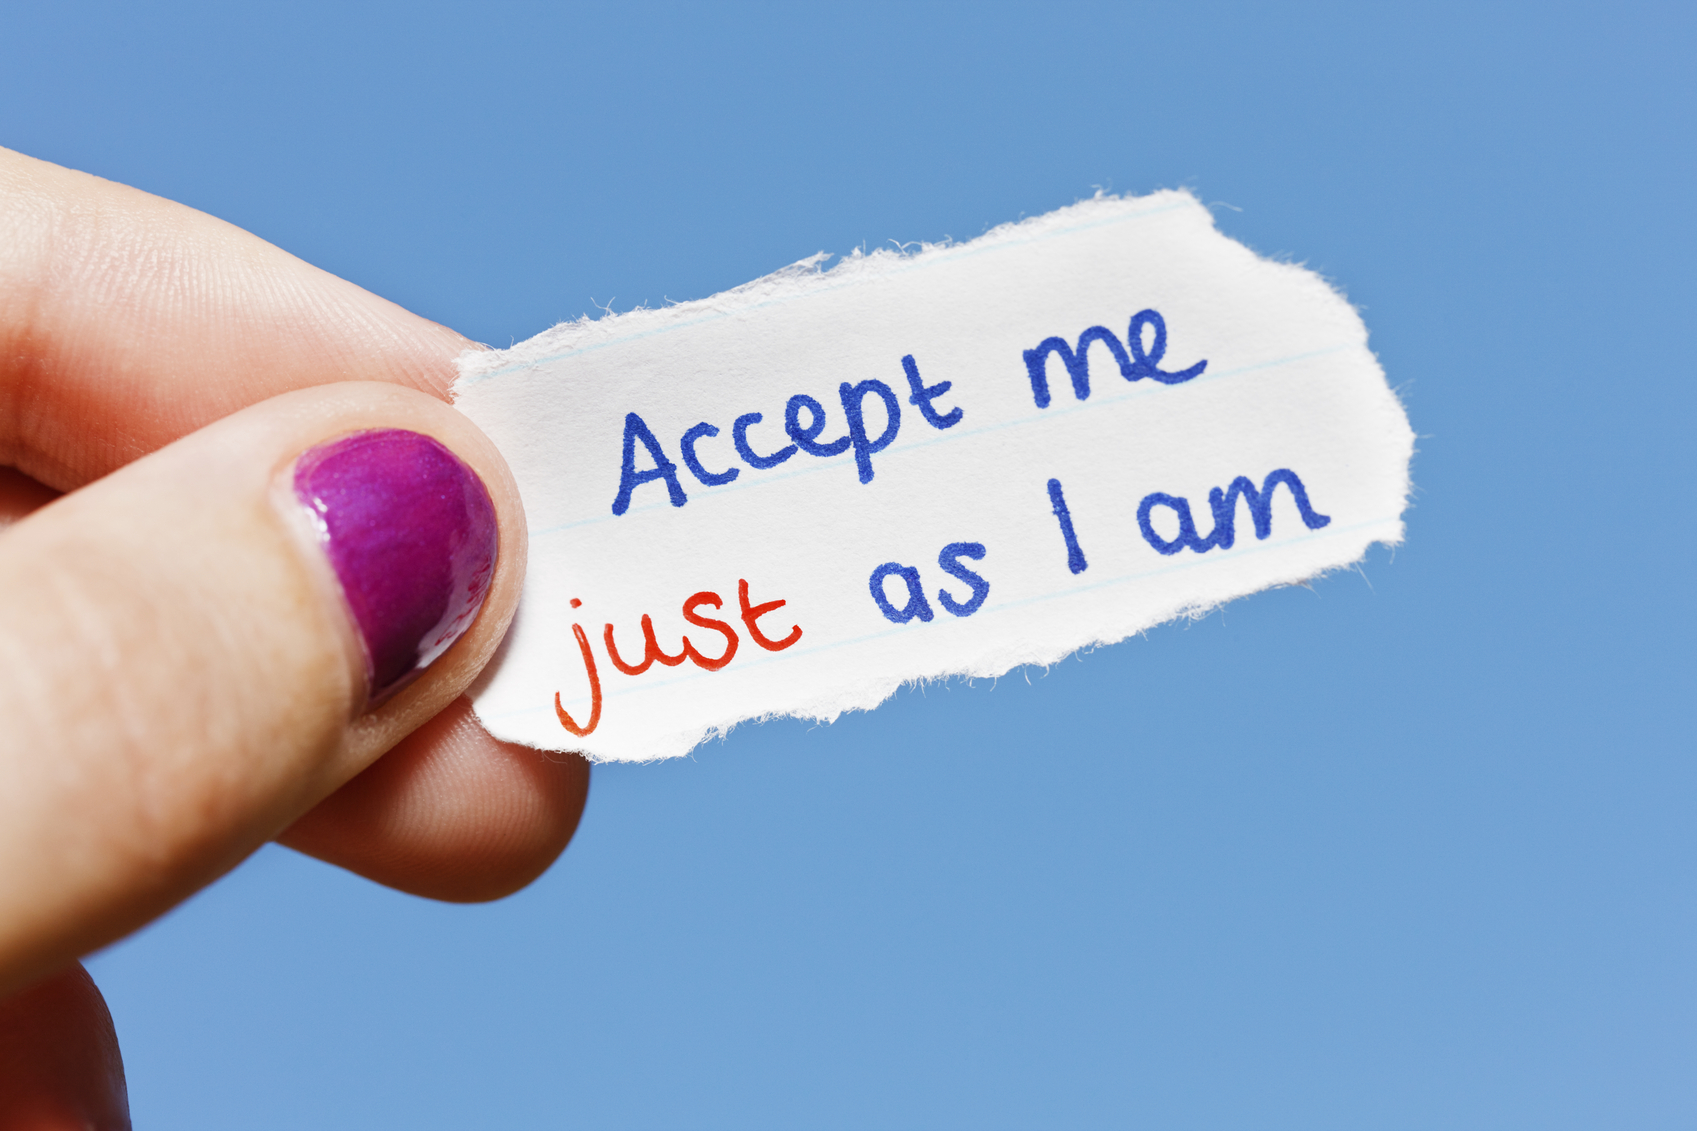 Accept me just as I am says hand-drawn note